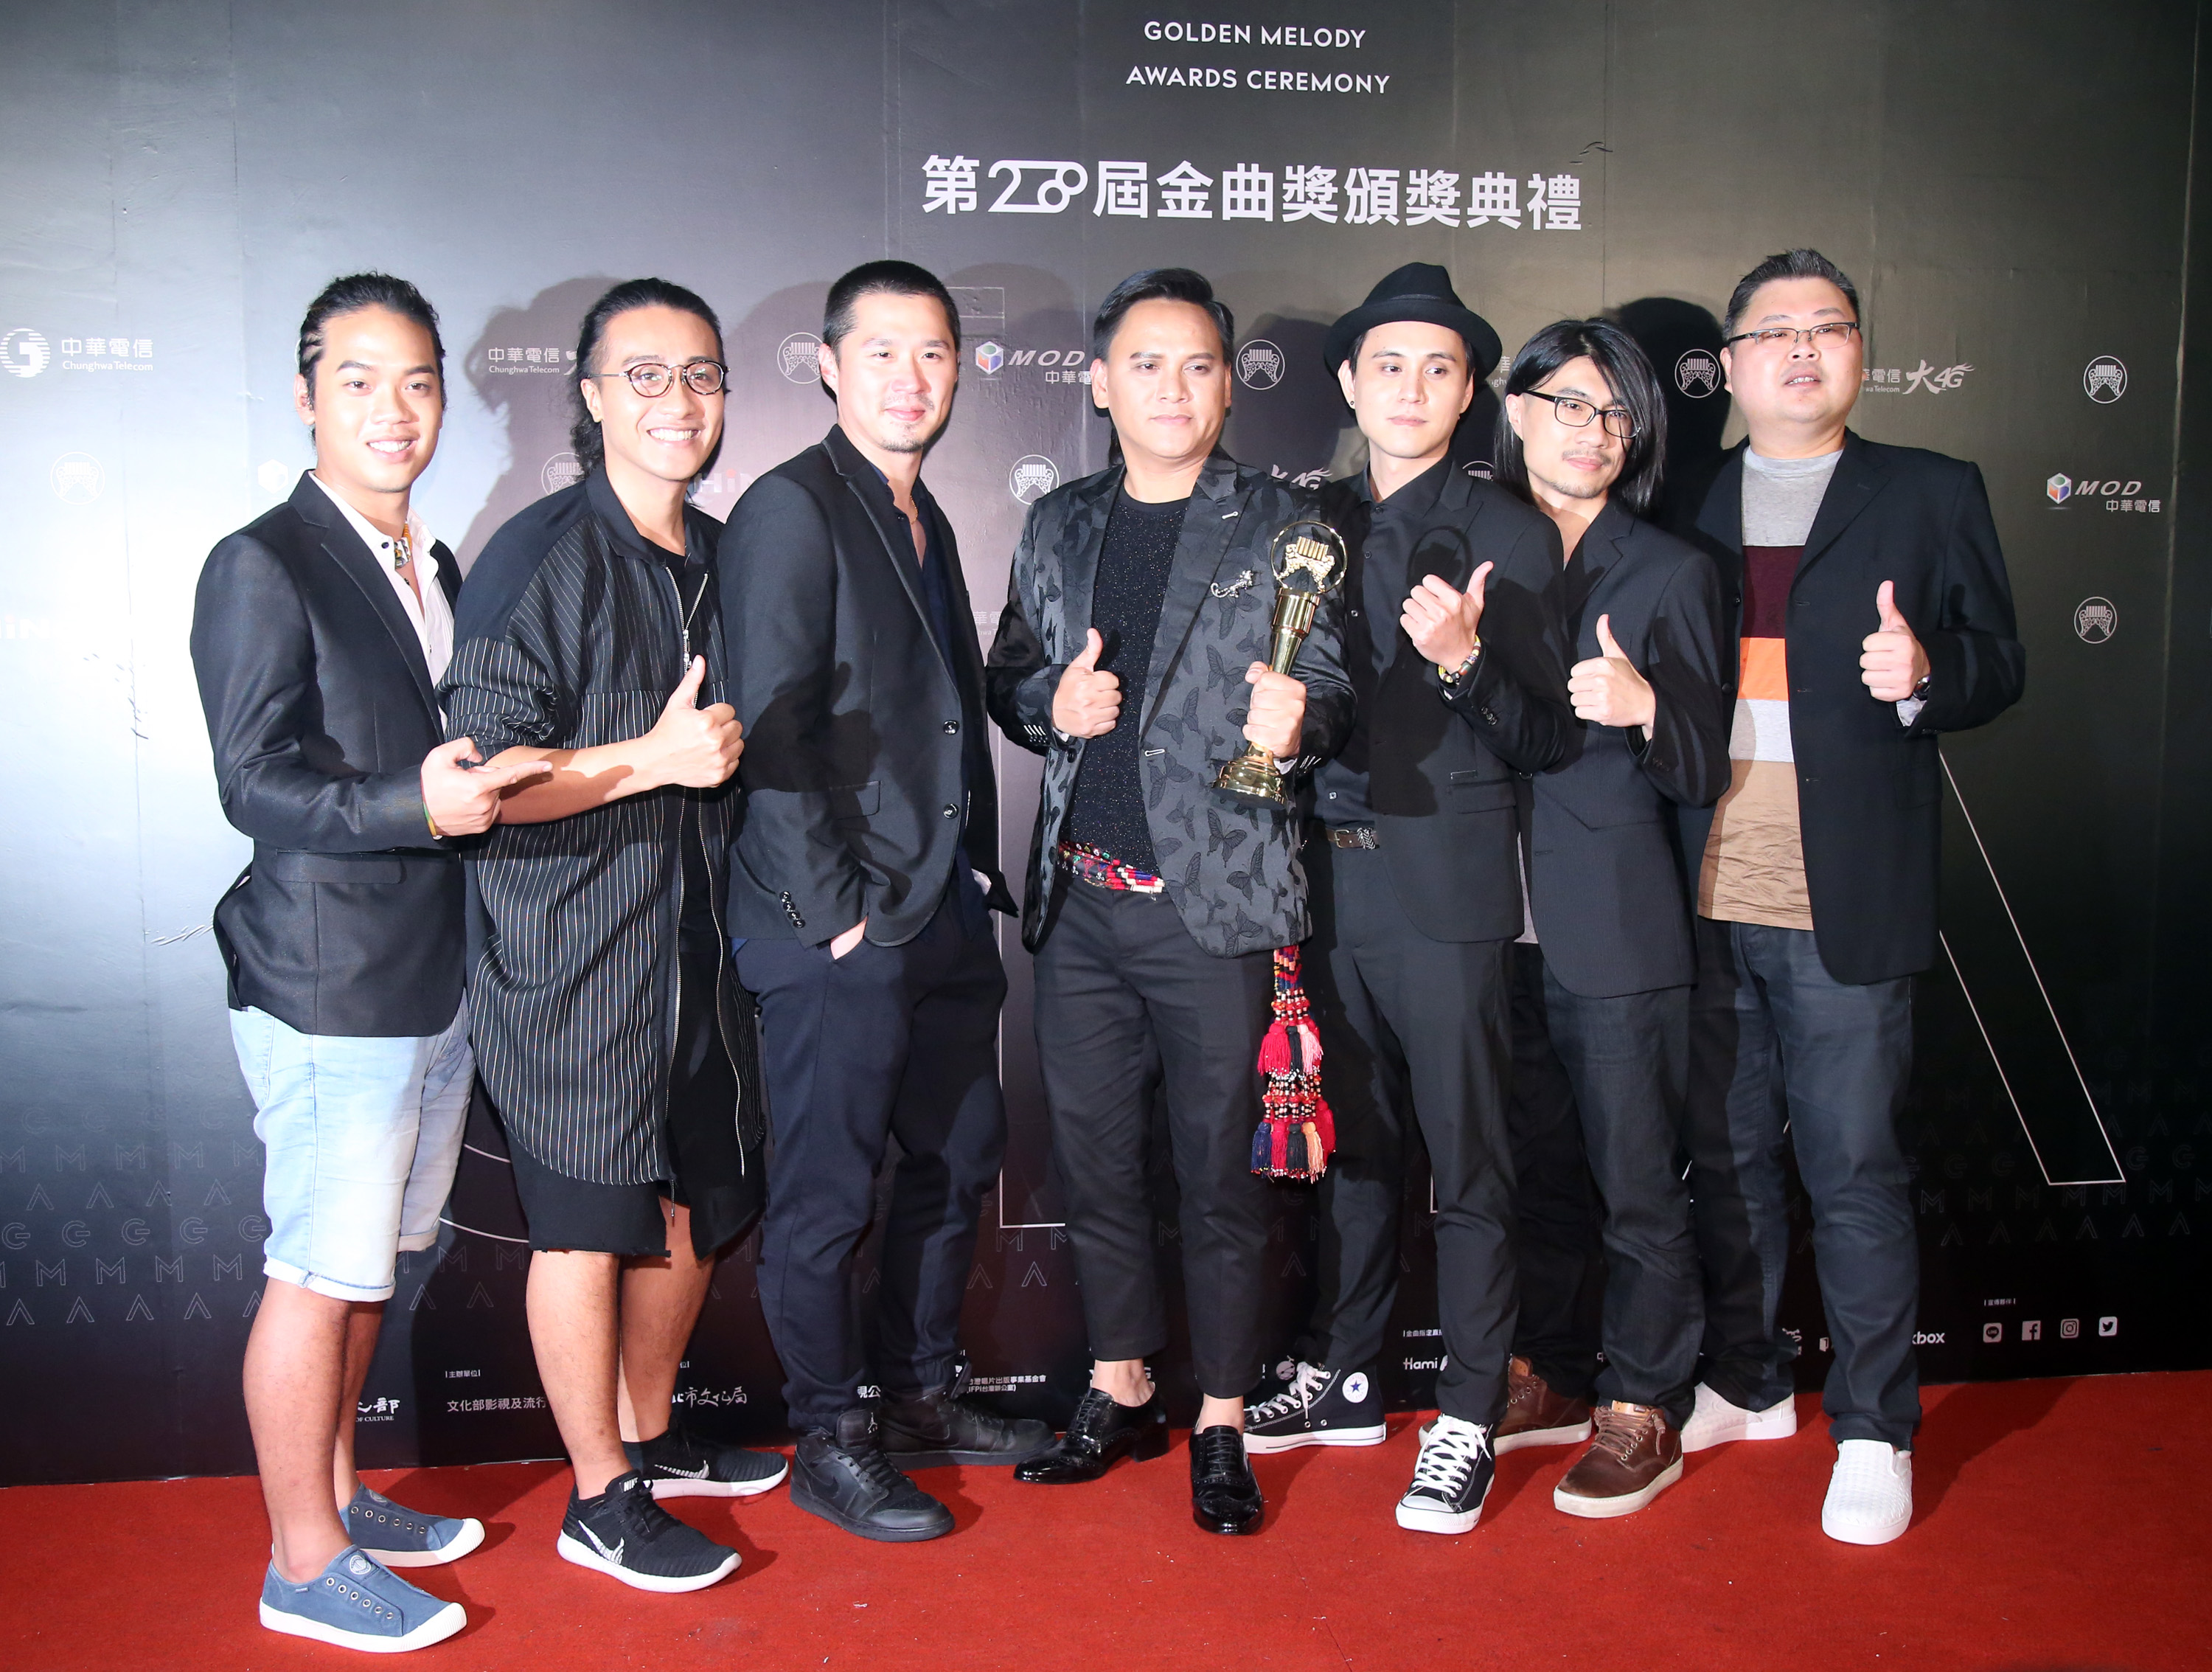 Music veterans and newcomers on Saturday split the top awards at the 28th Golden Melody Awards, Taiwan's biggest music awards event.